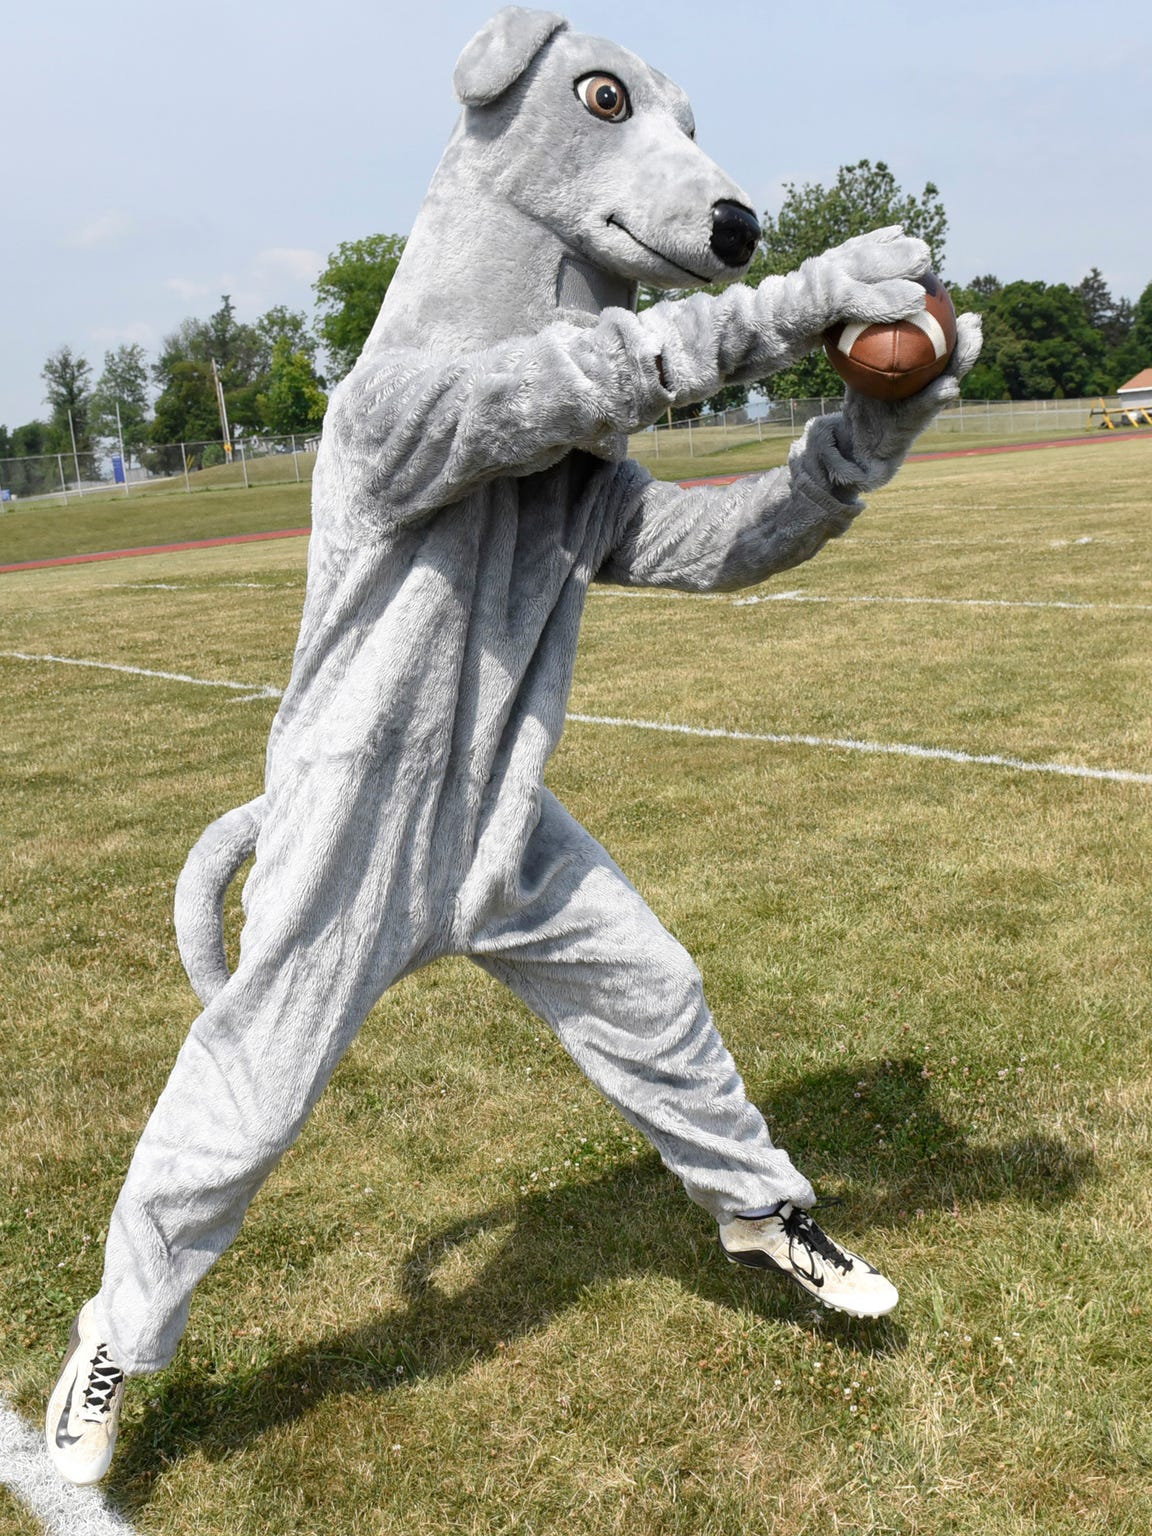 Tyler Gustafson, a recent graduate, wore the Shippensburg Greyhound mascot costume at some events for the school.